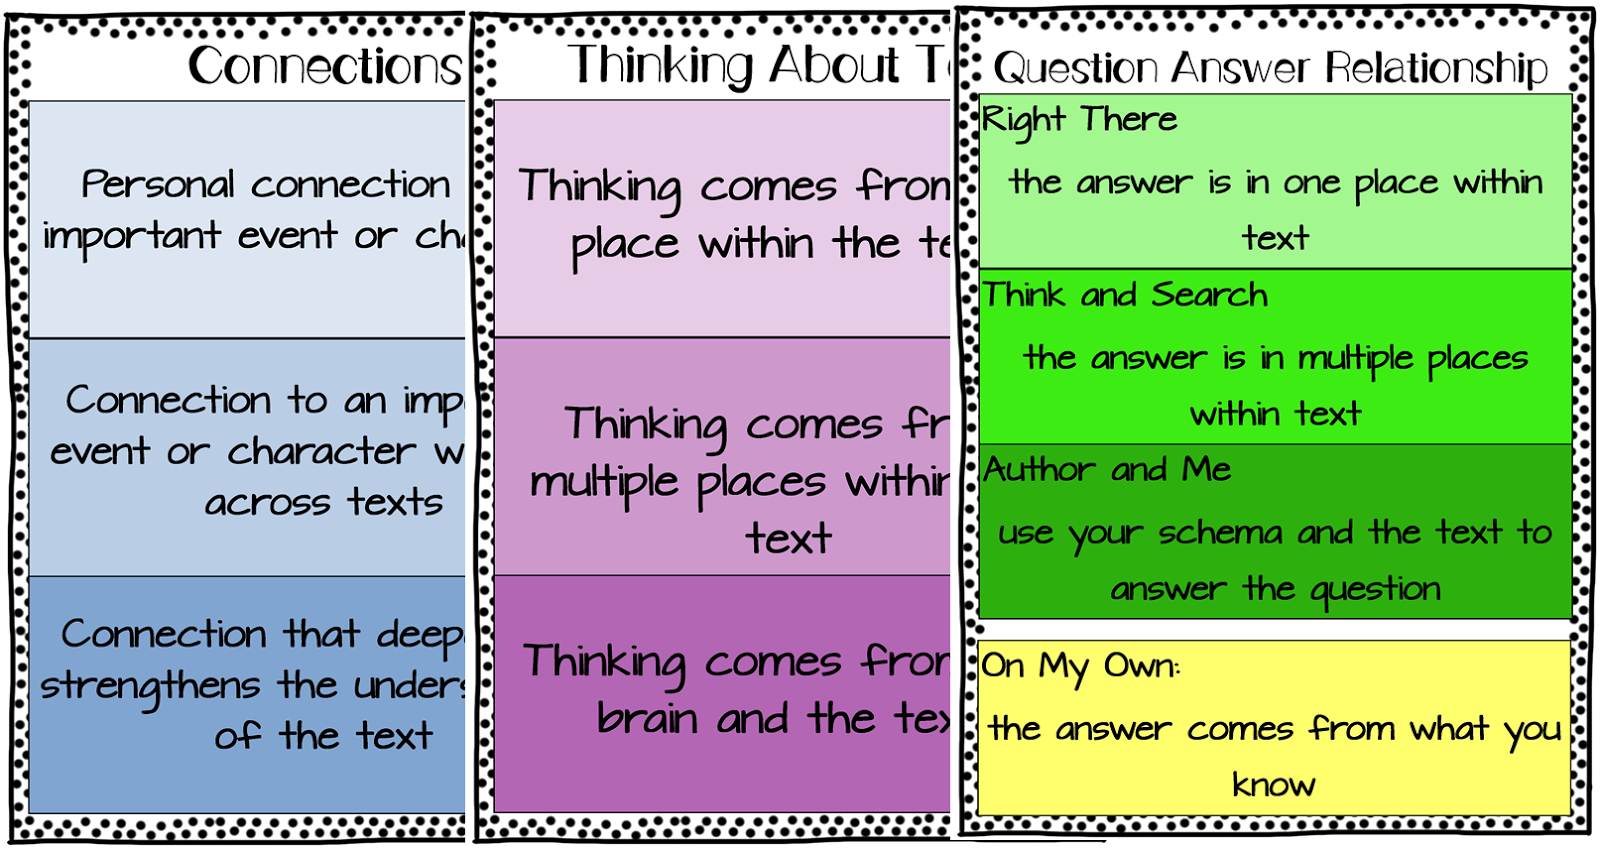 http://www.teacherspayteachers.com/Product/Deep-Thinking-Shades-of-Thinking-1644754